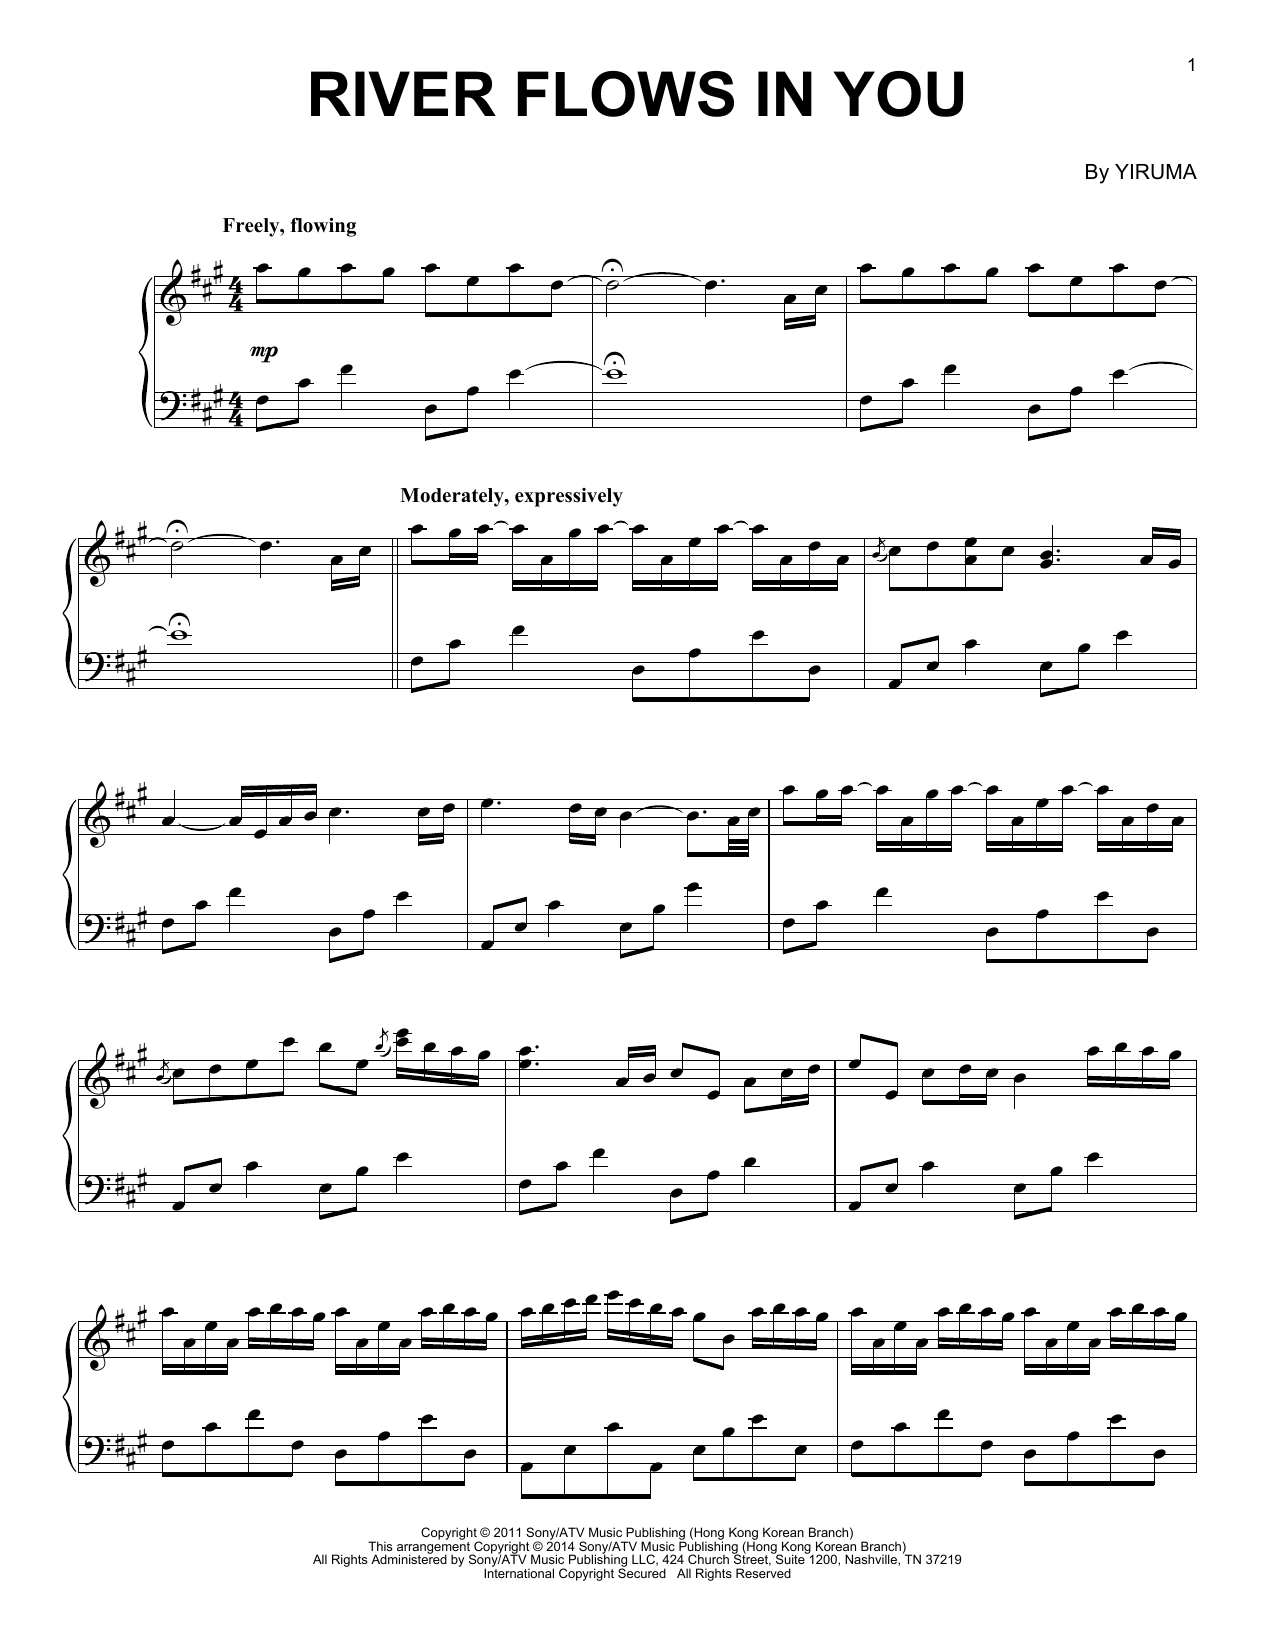 Yiruma River Flows In You sheet music notes and chords. Download Printable PDF.